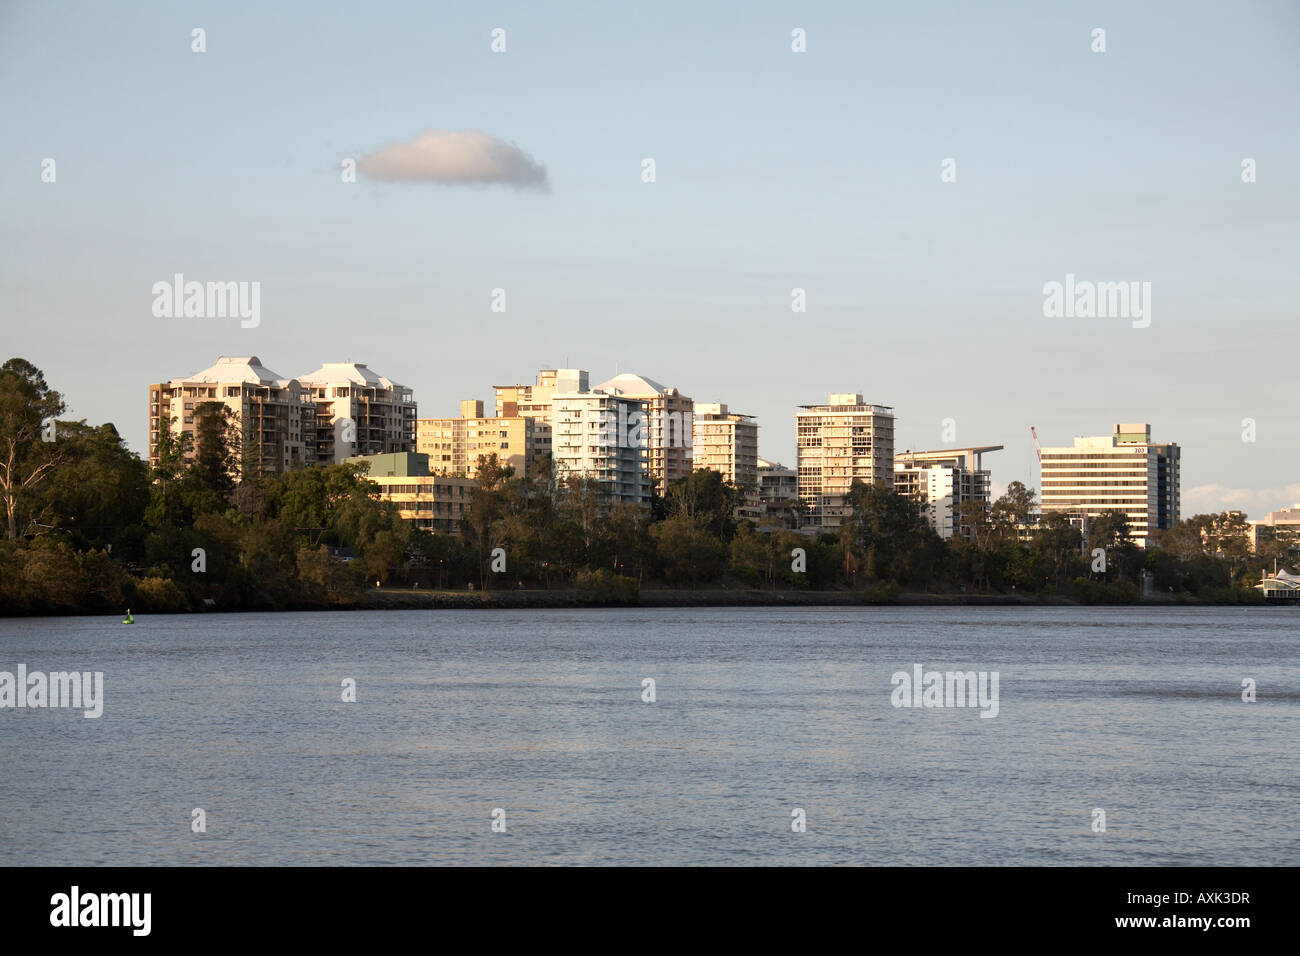 Residential buildings beyond the river in evening light Brisbane Queensland QLD Australia - Stock Image